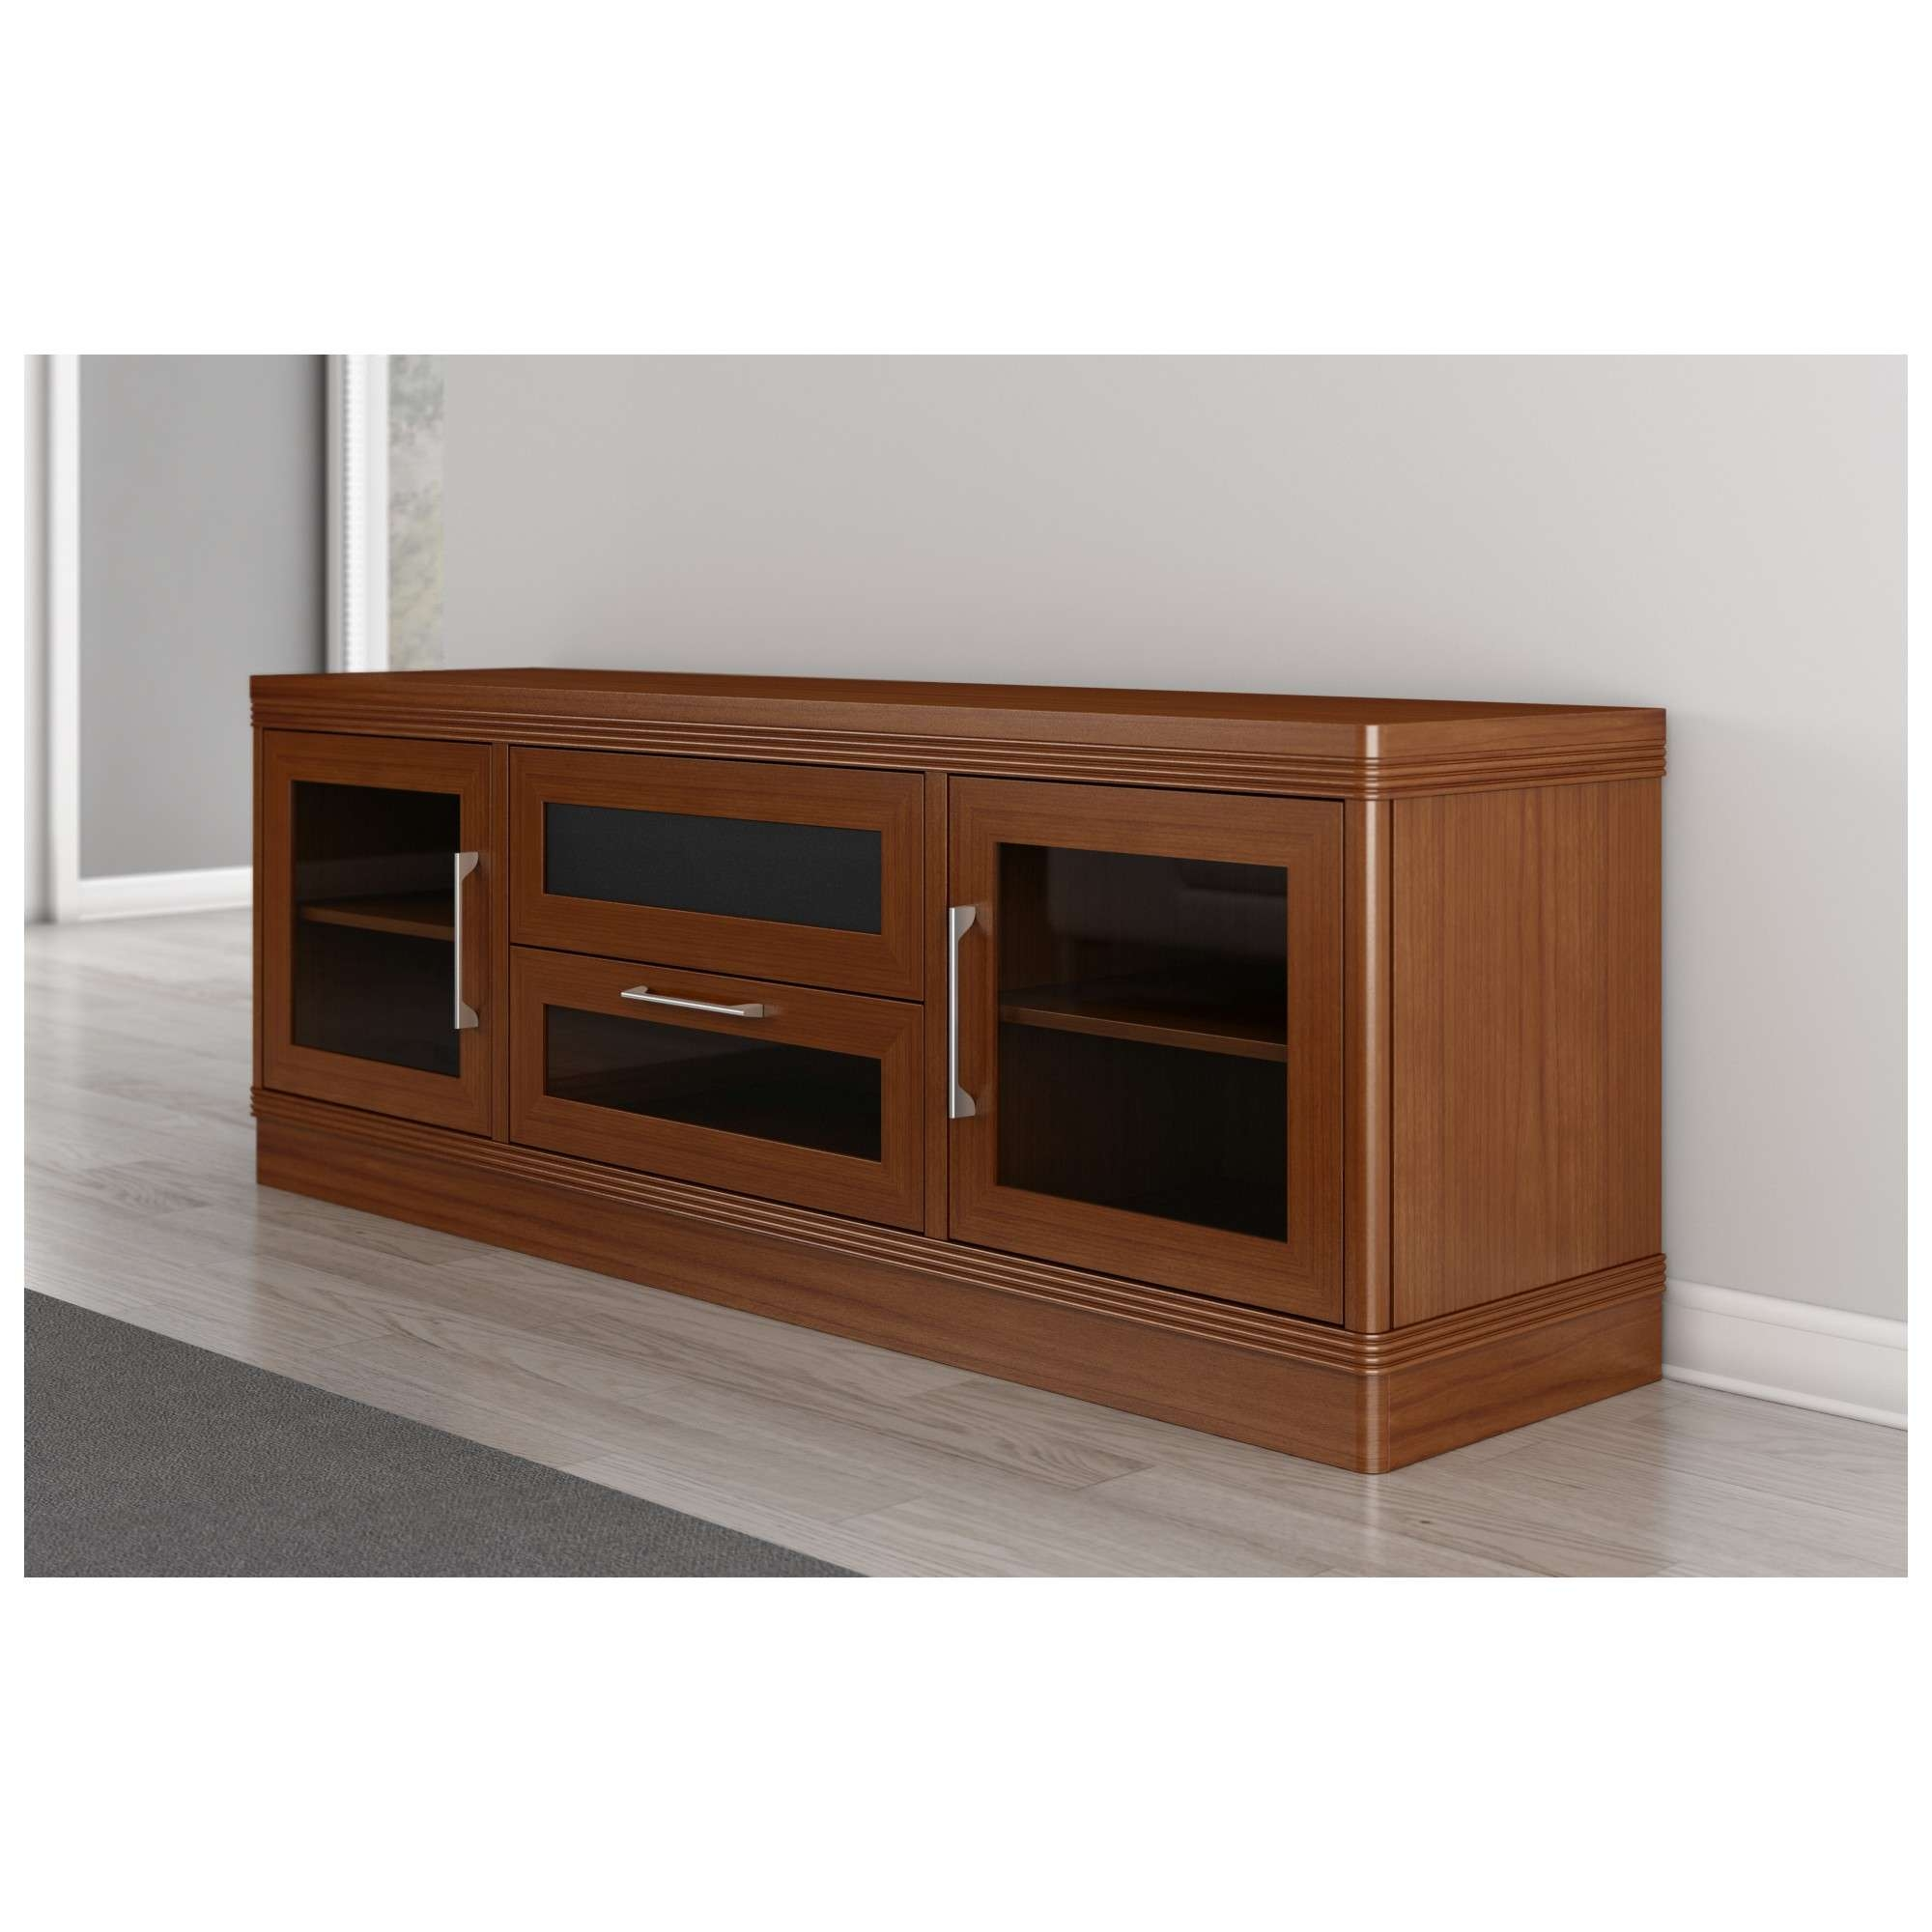 "Furnitech Ft72trlc 70"" Tv Stand Traditional Media Cabinet W Throughout Light Cherry Tv Stands (View 8 of 15)"